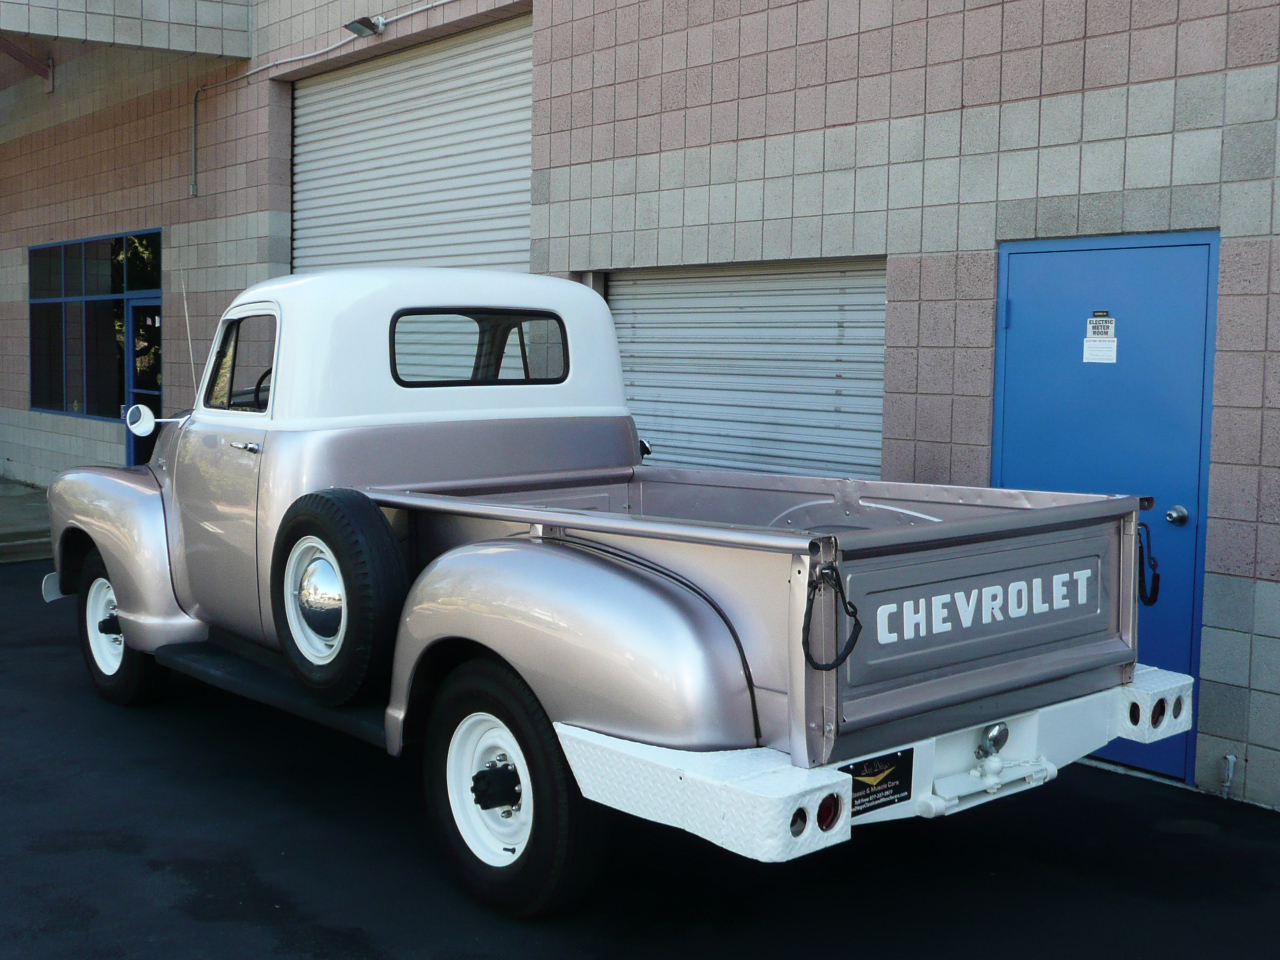 1954 CHEVROLET 3600 LONG BED PICKUP - Rear 3/4 - 80992